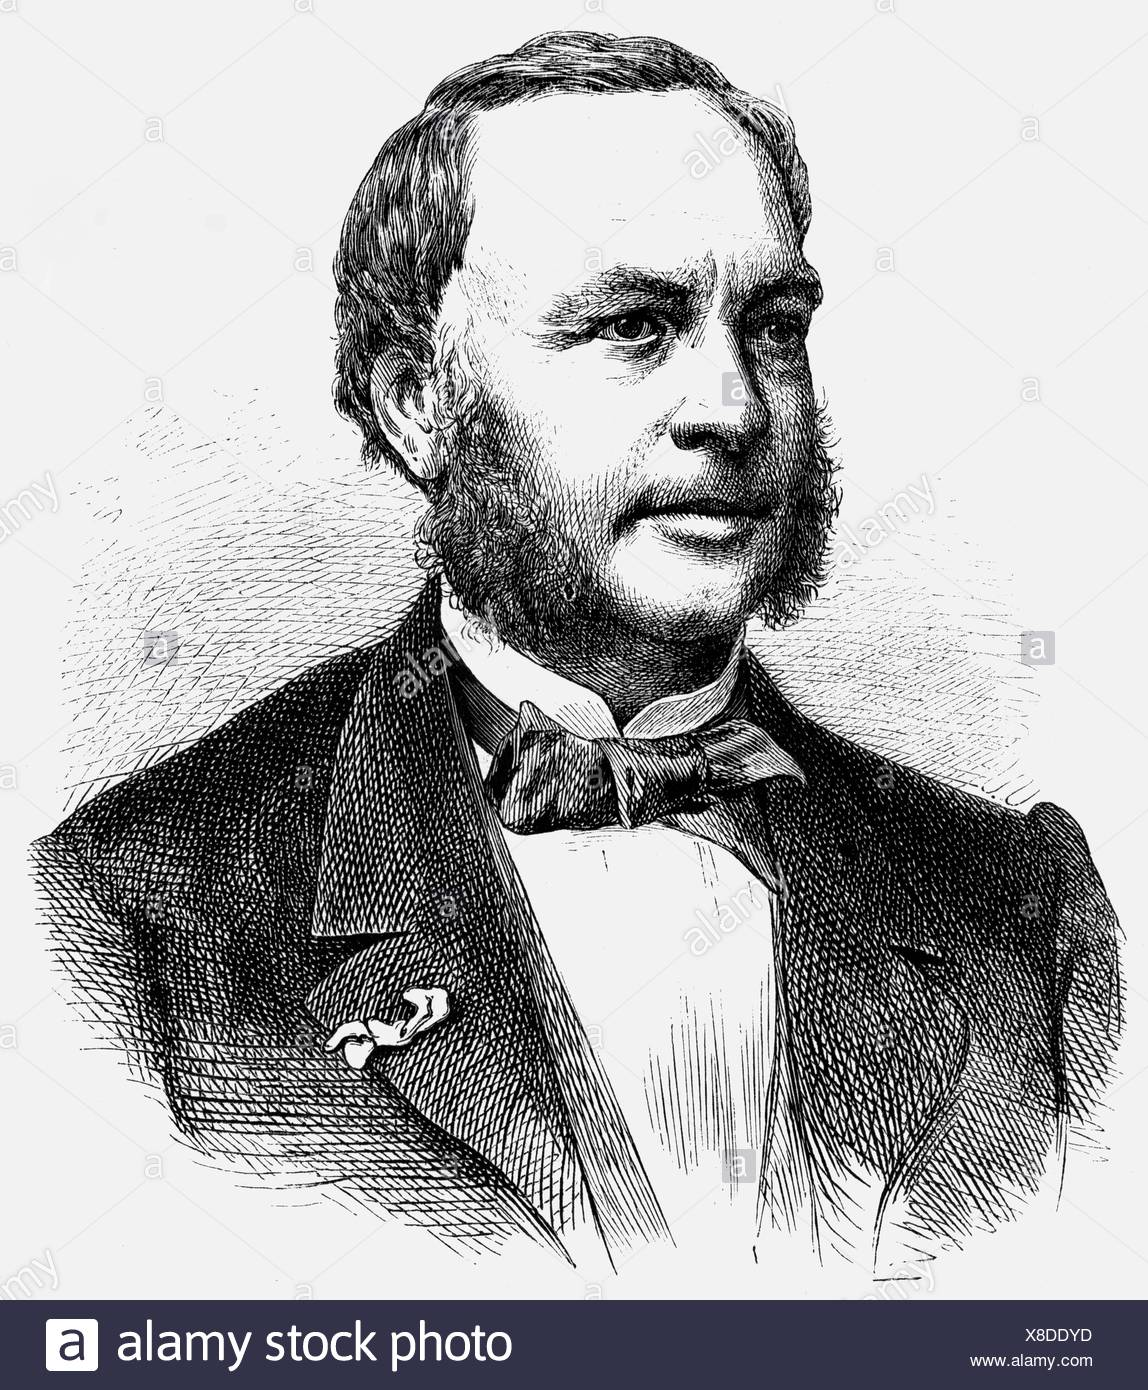 Hachette, Louis, 5.5.1800 - 31.7.1864, French bookseller, publisher, founder of Hachette S.A., Librairie, portrait, wood engraving after photo, Additional-Rights-Clearances-NA Stock Photo